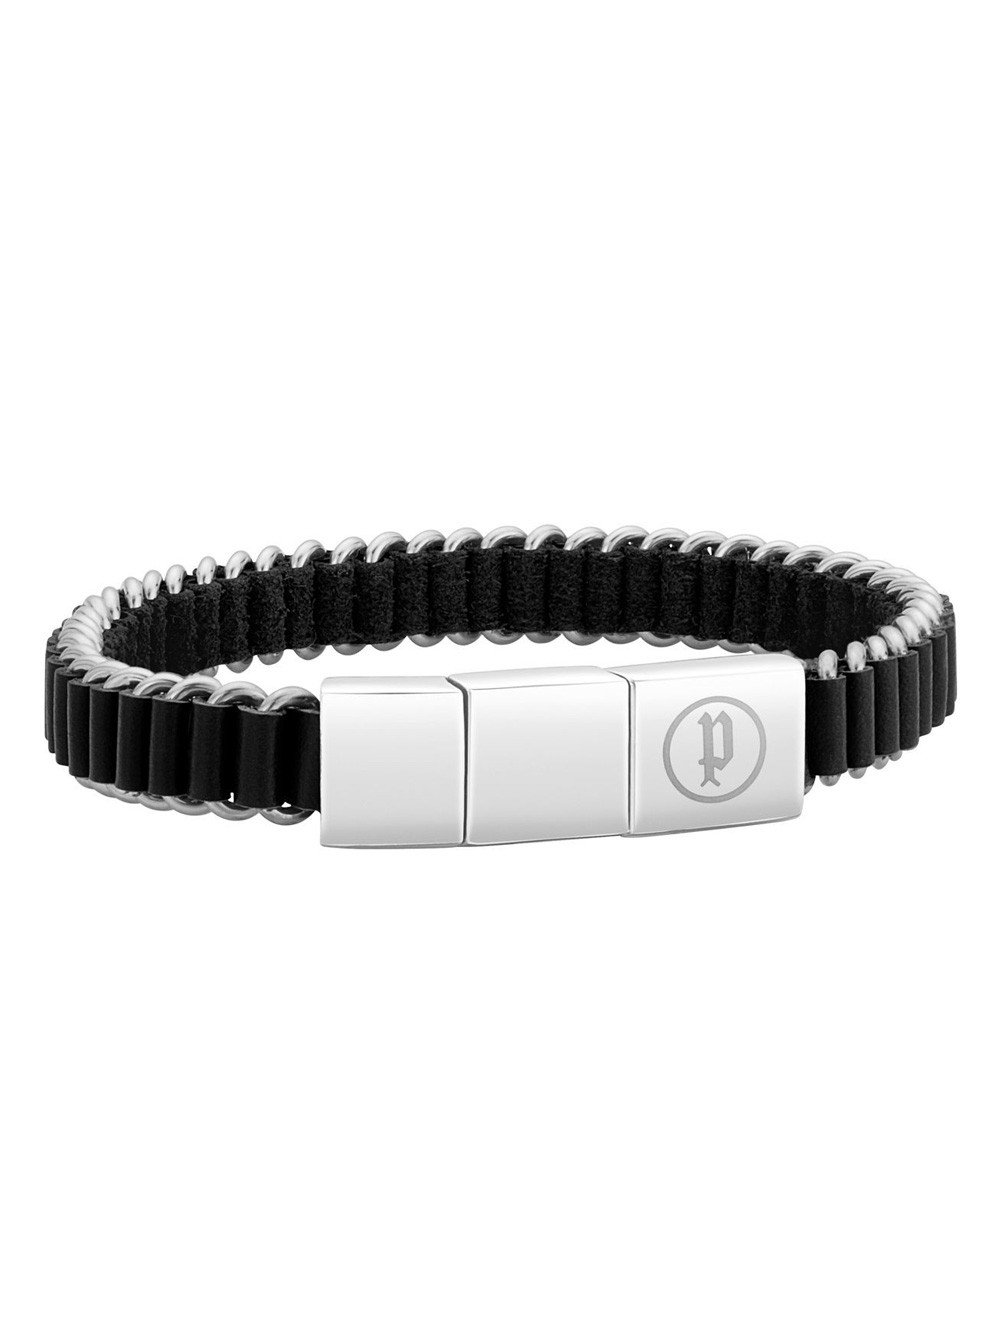 Police Armband PJ26203BLS.01 Synthesis 22cm